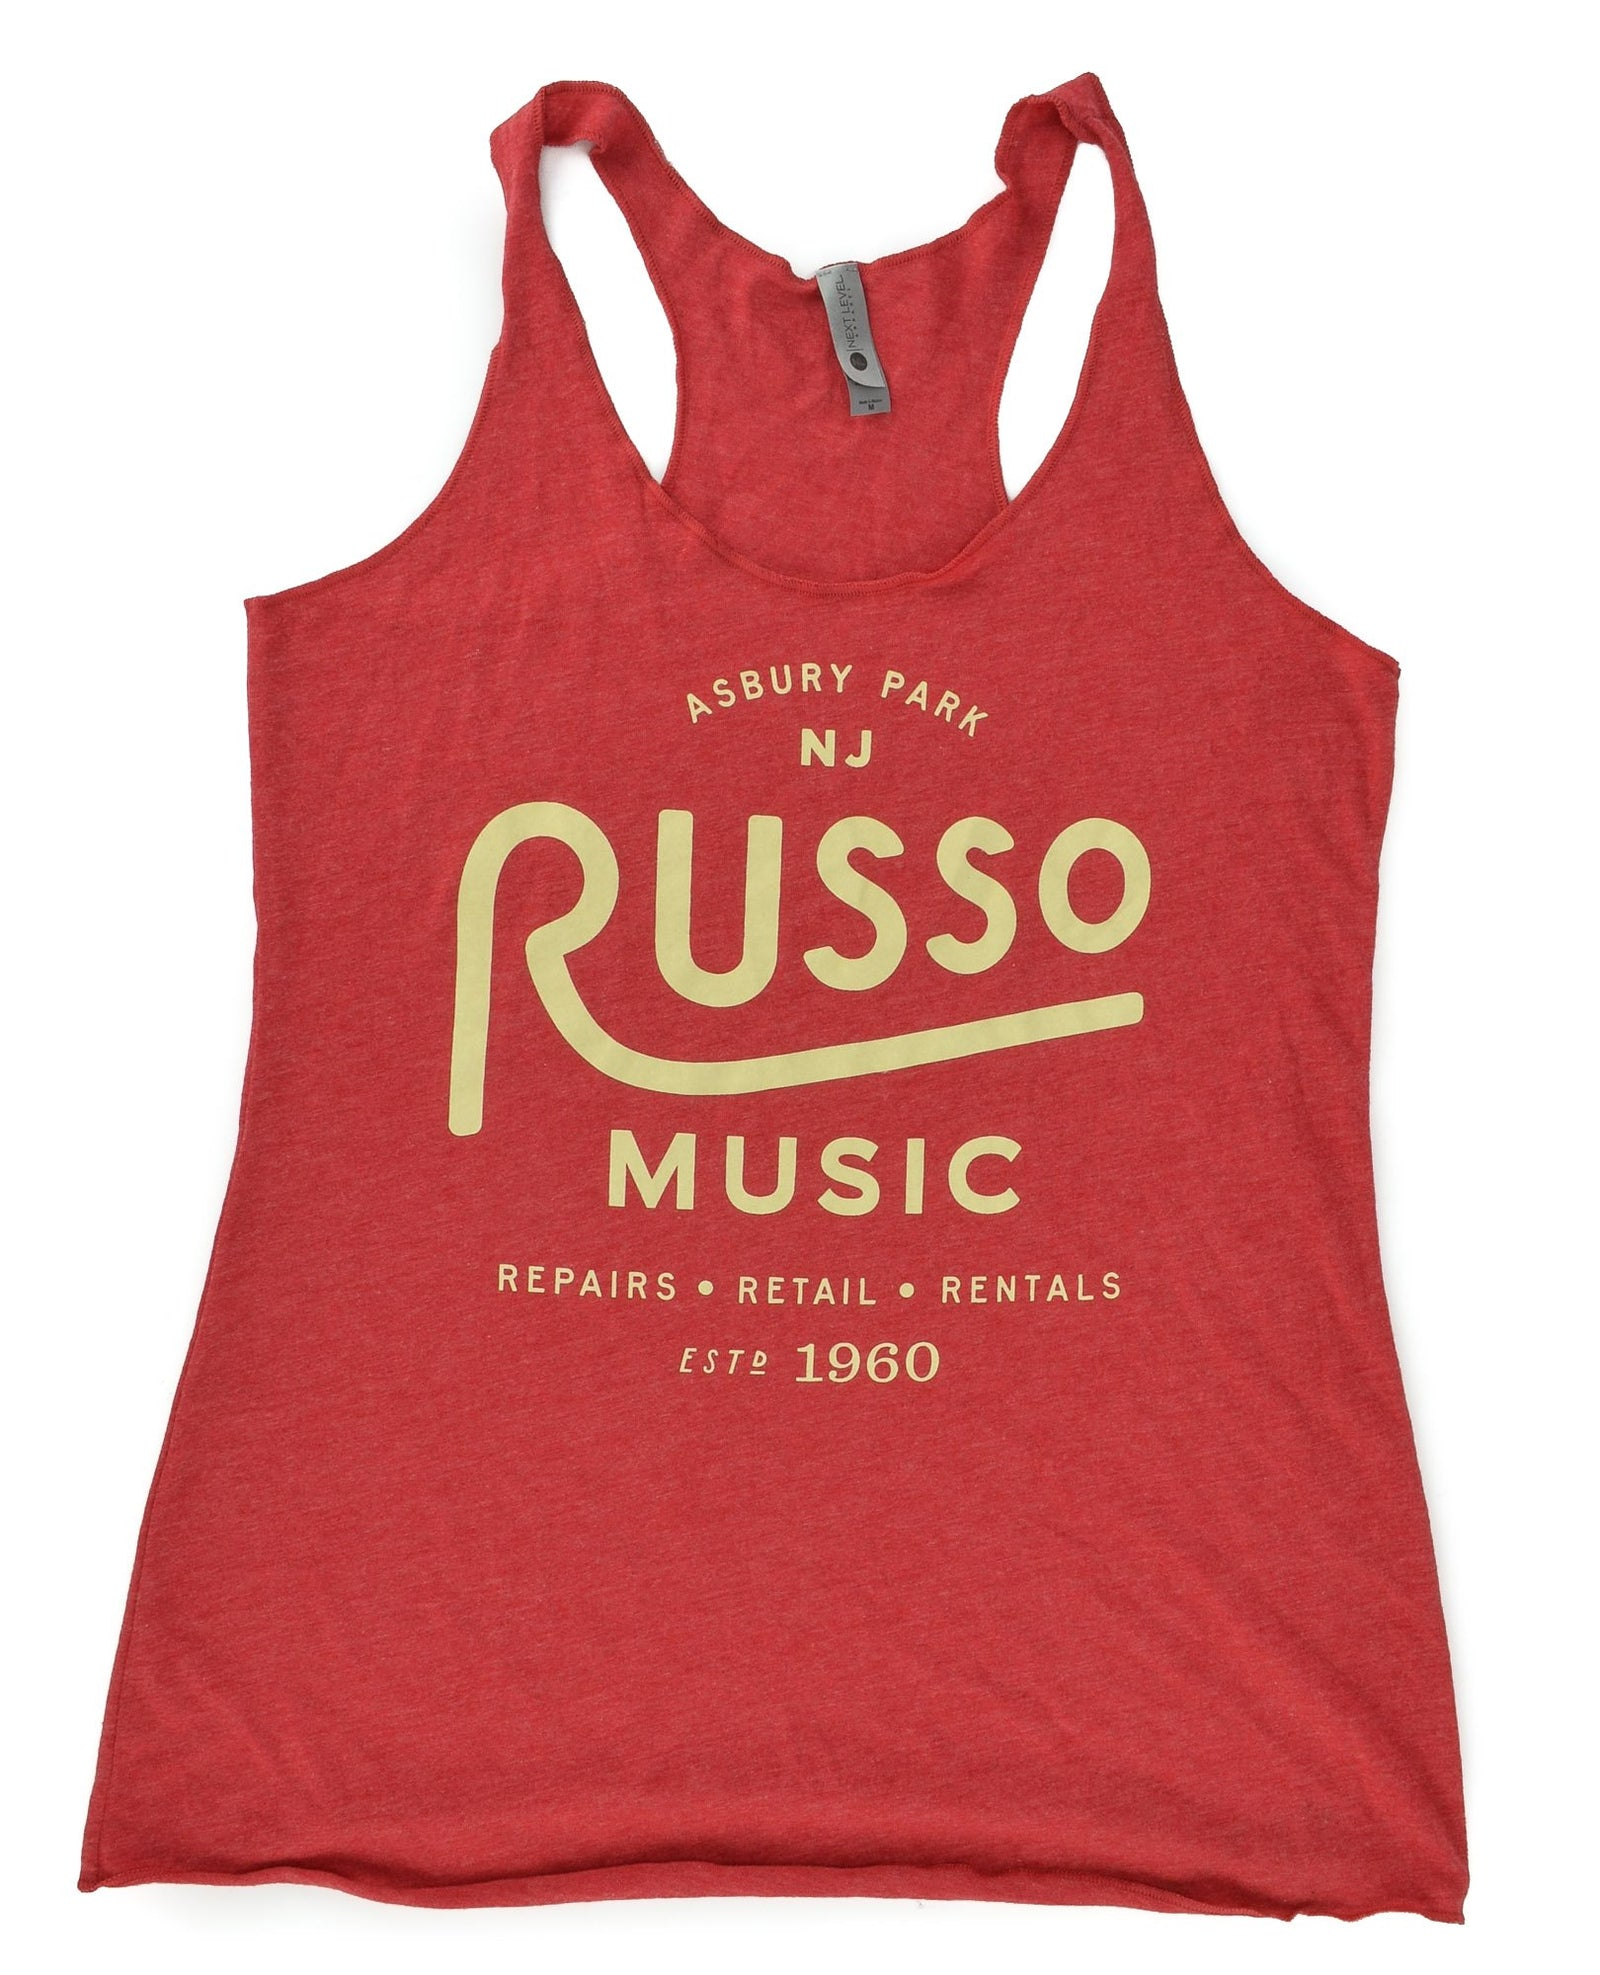 Russo Music 'Asbury Park' Racer Back Tank Top - Heather Red